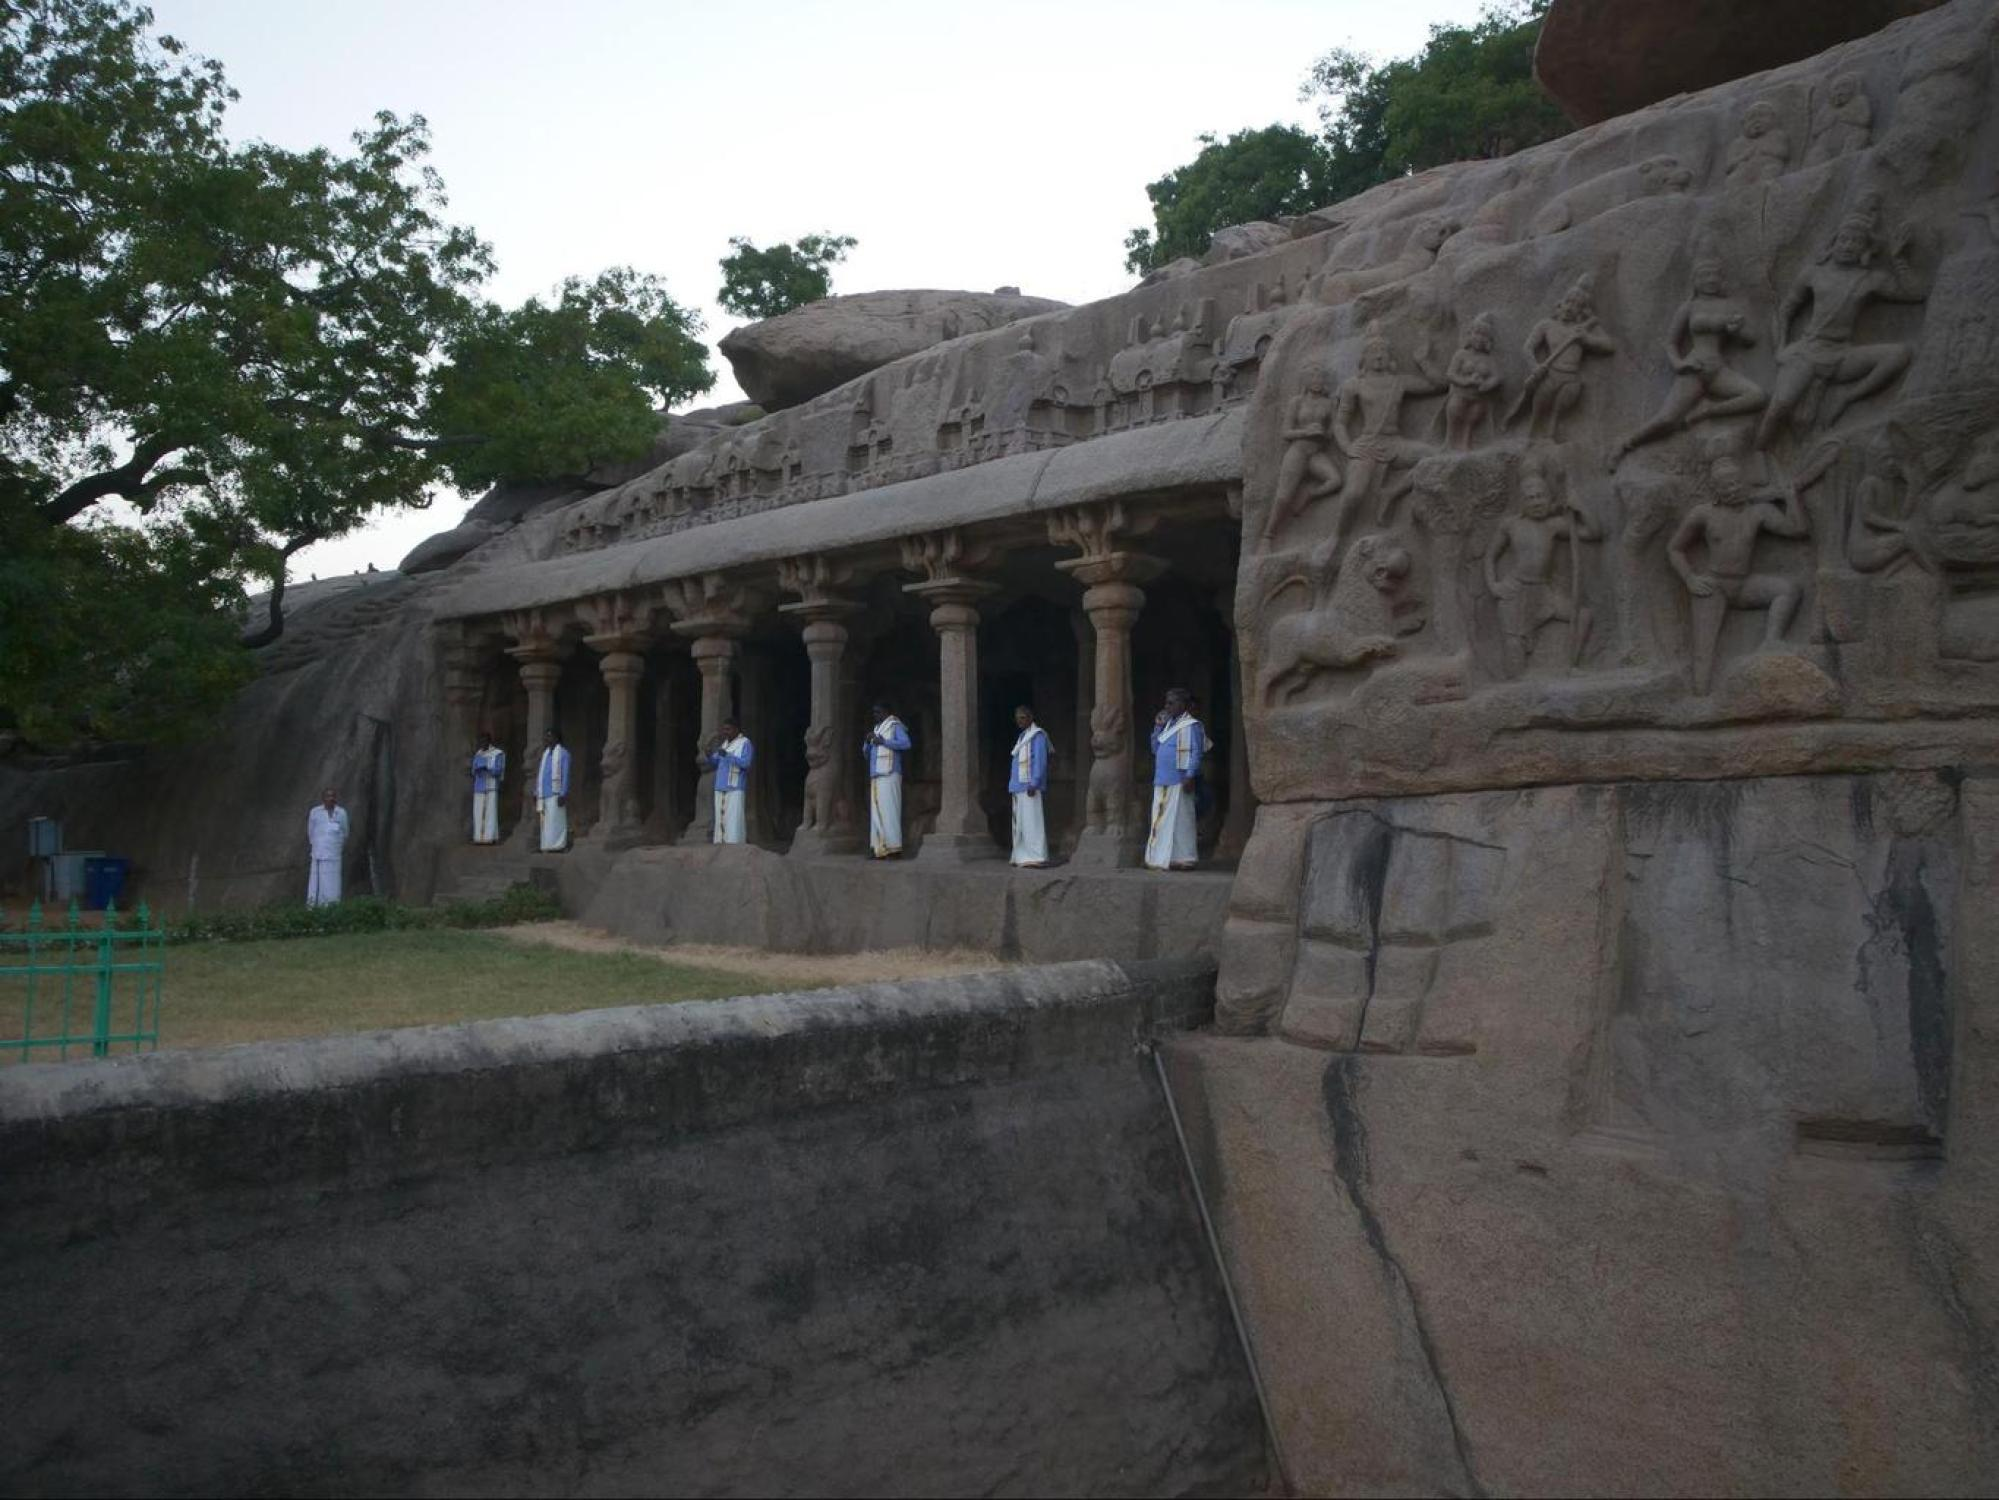 Arjuna's Penance carvings